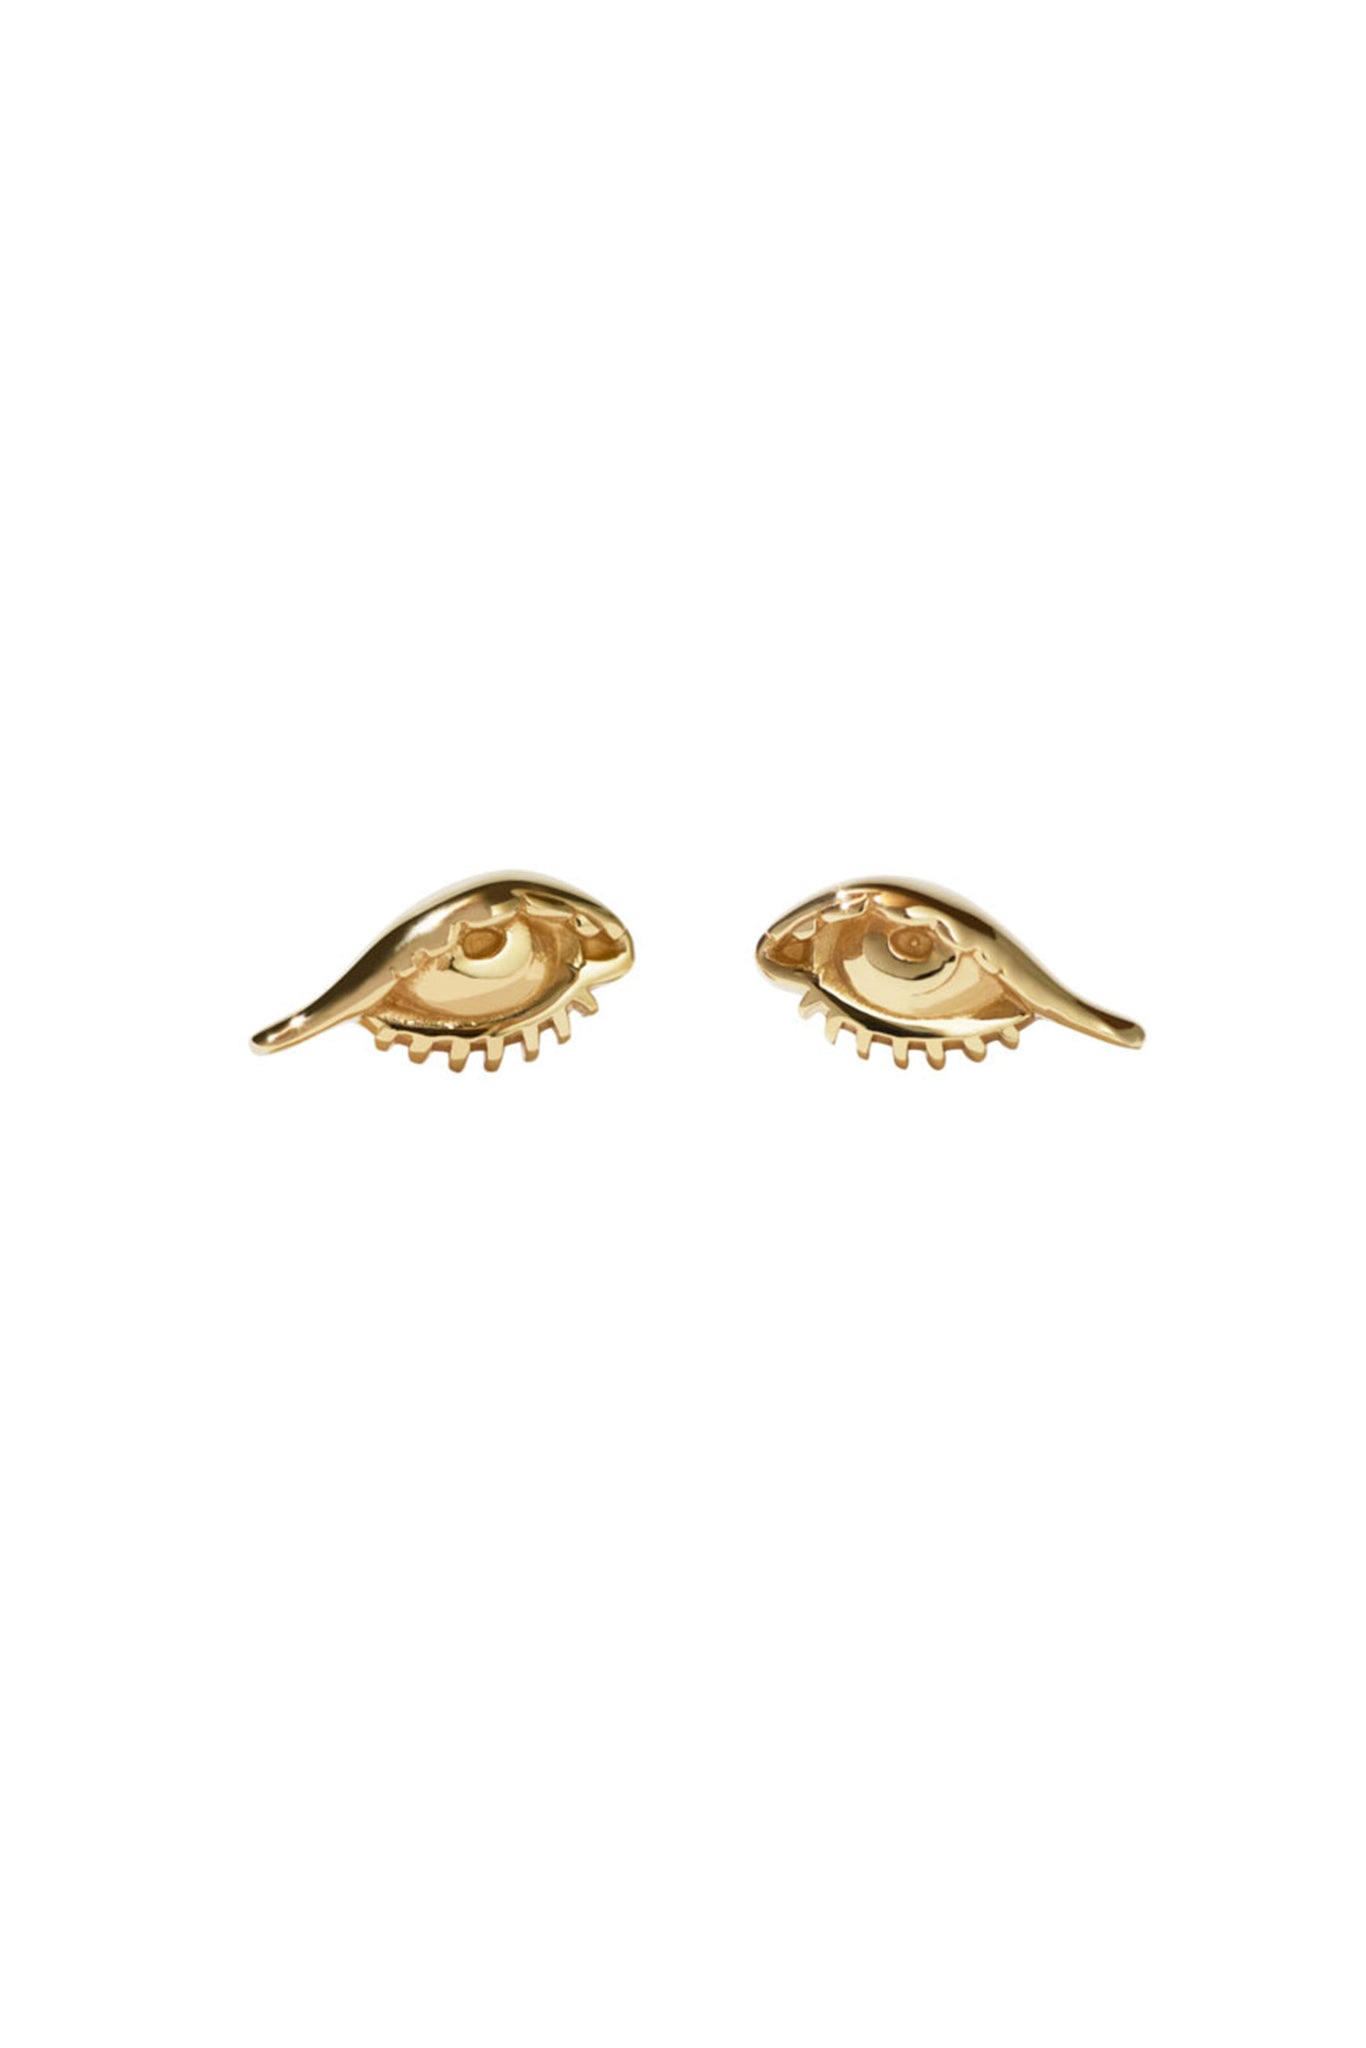 Proteger Stud Earrings | Gold Plated